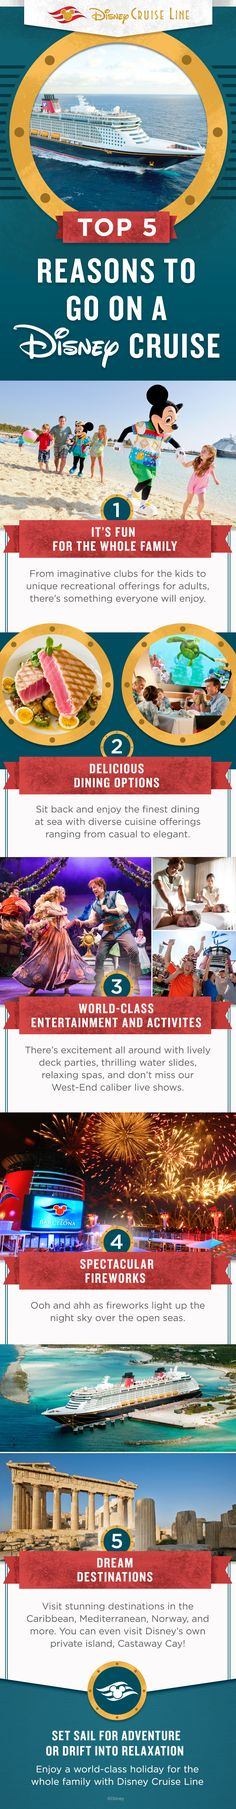 Discover the top 5 reasons to go on Disney Cruise and enjoy a world-class holiday for the whole family!